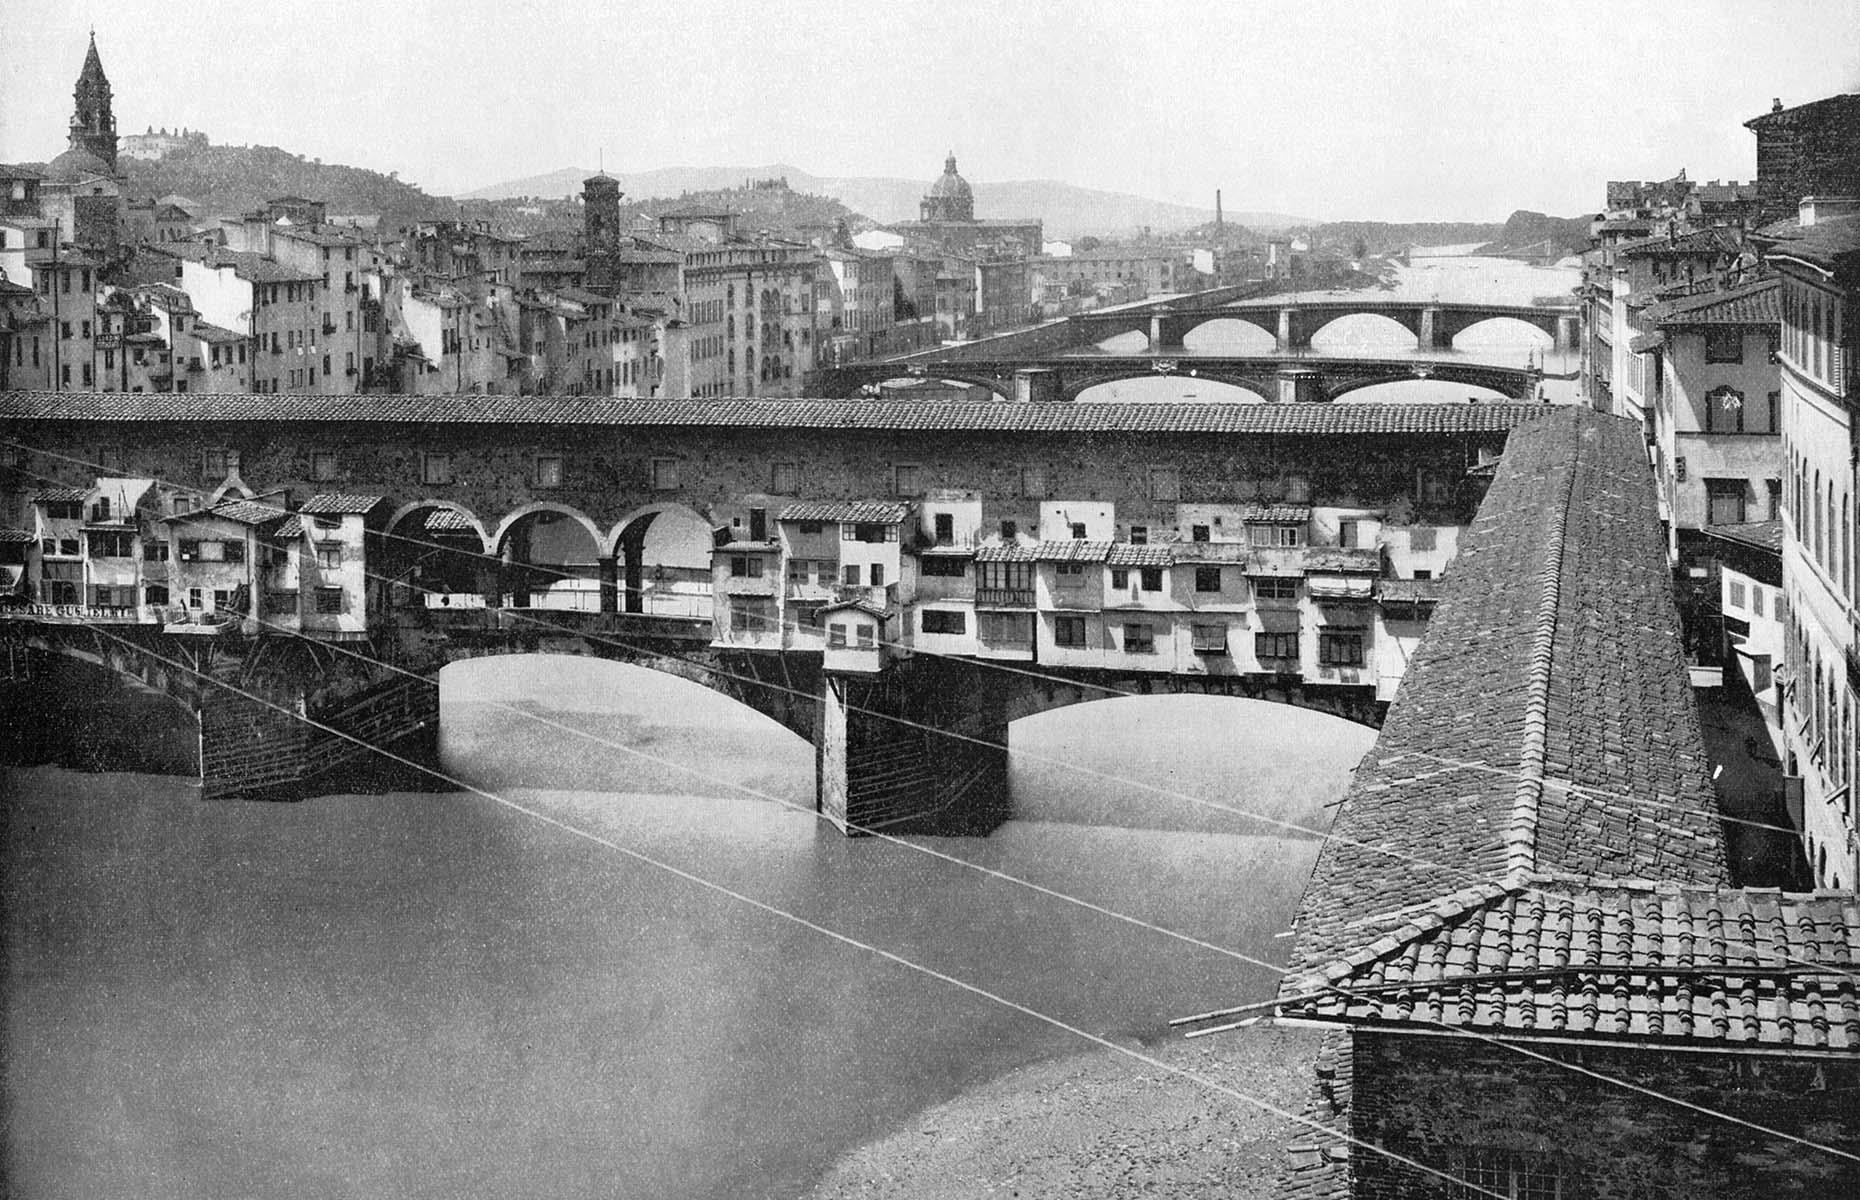 Slide 16 of 27: A city with a long and illustrious history, Florence needs no introductions. Its famous Ponte Vecchio is captured here in 1893, just 22 years after Rome replaced the cityas the capital of the Kingdom of Italy. During the Second World War the city was under a year-long German occupation and as the British troops closed in, the Germans had plans to destroy all of the bridges along the Arno river in 1944, including Ponte Vecchio. Thankfully, a consul managed to convince aGerman generalto spare thebridge due to itshistoric value.